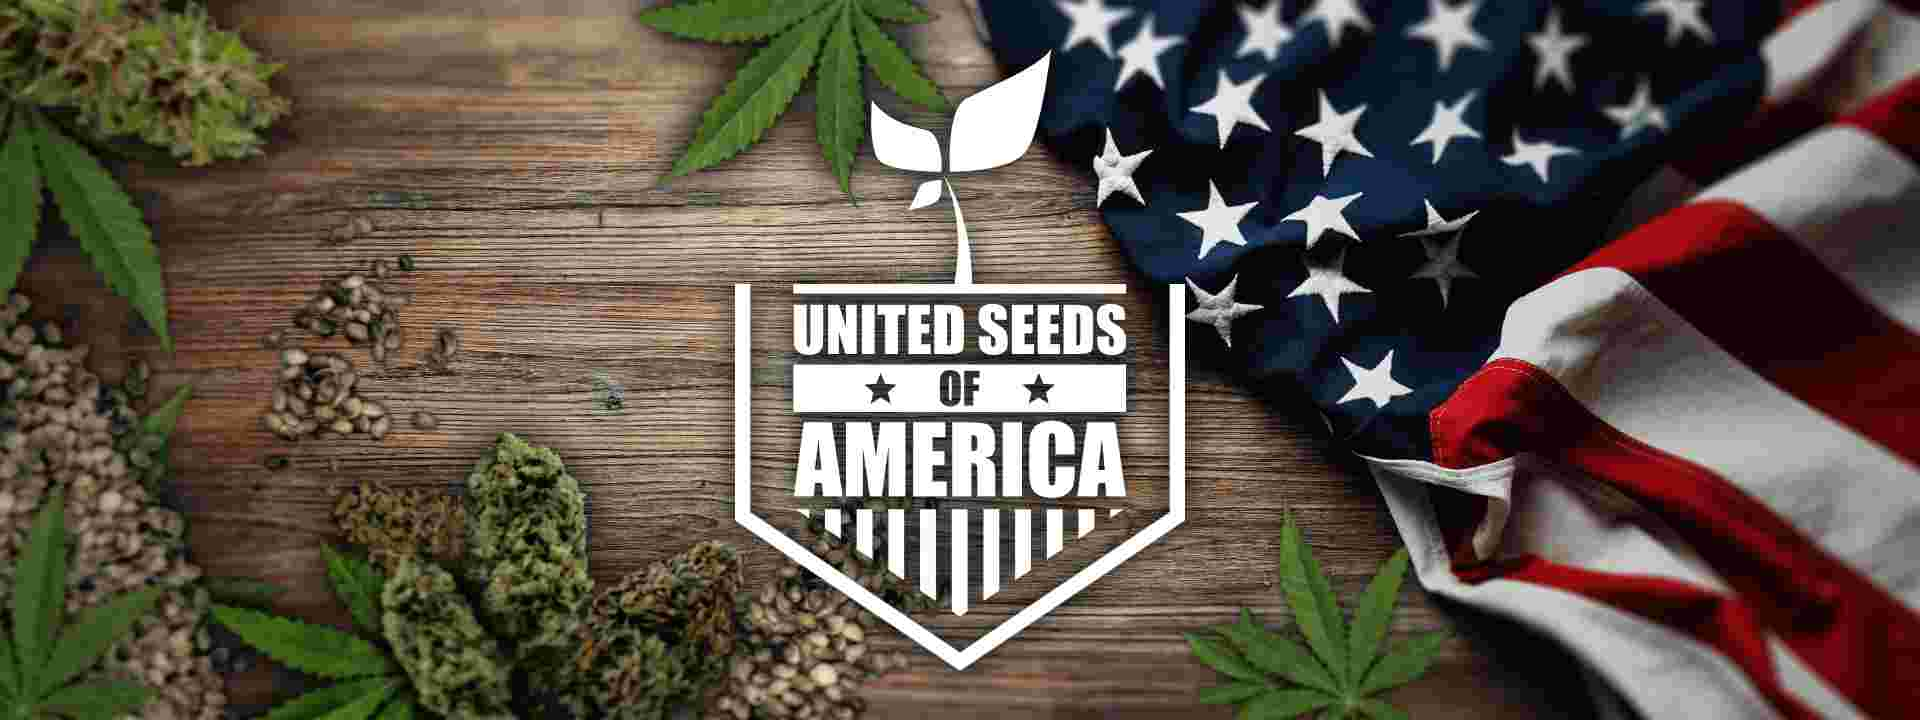 United Seeds of America